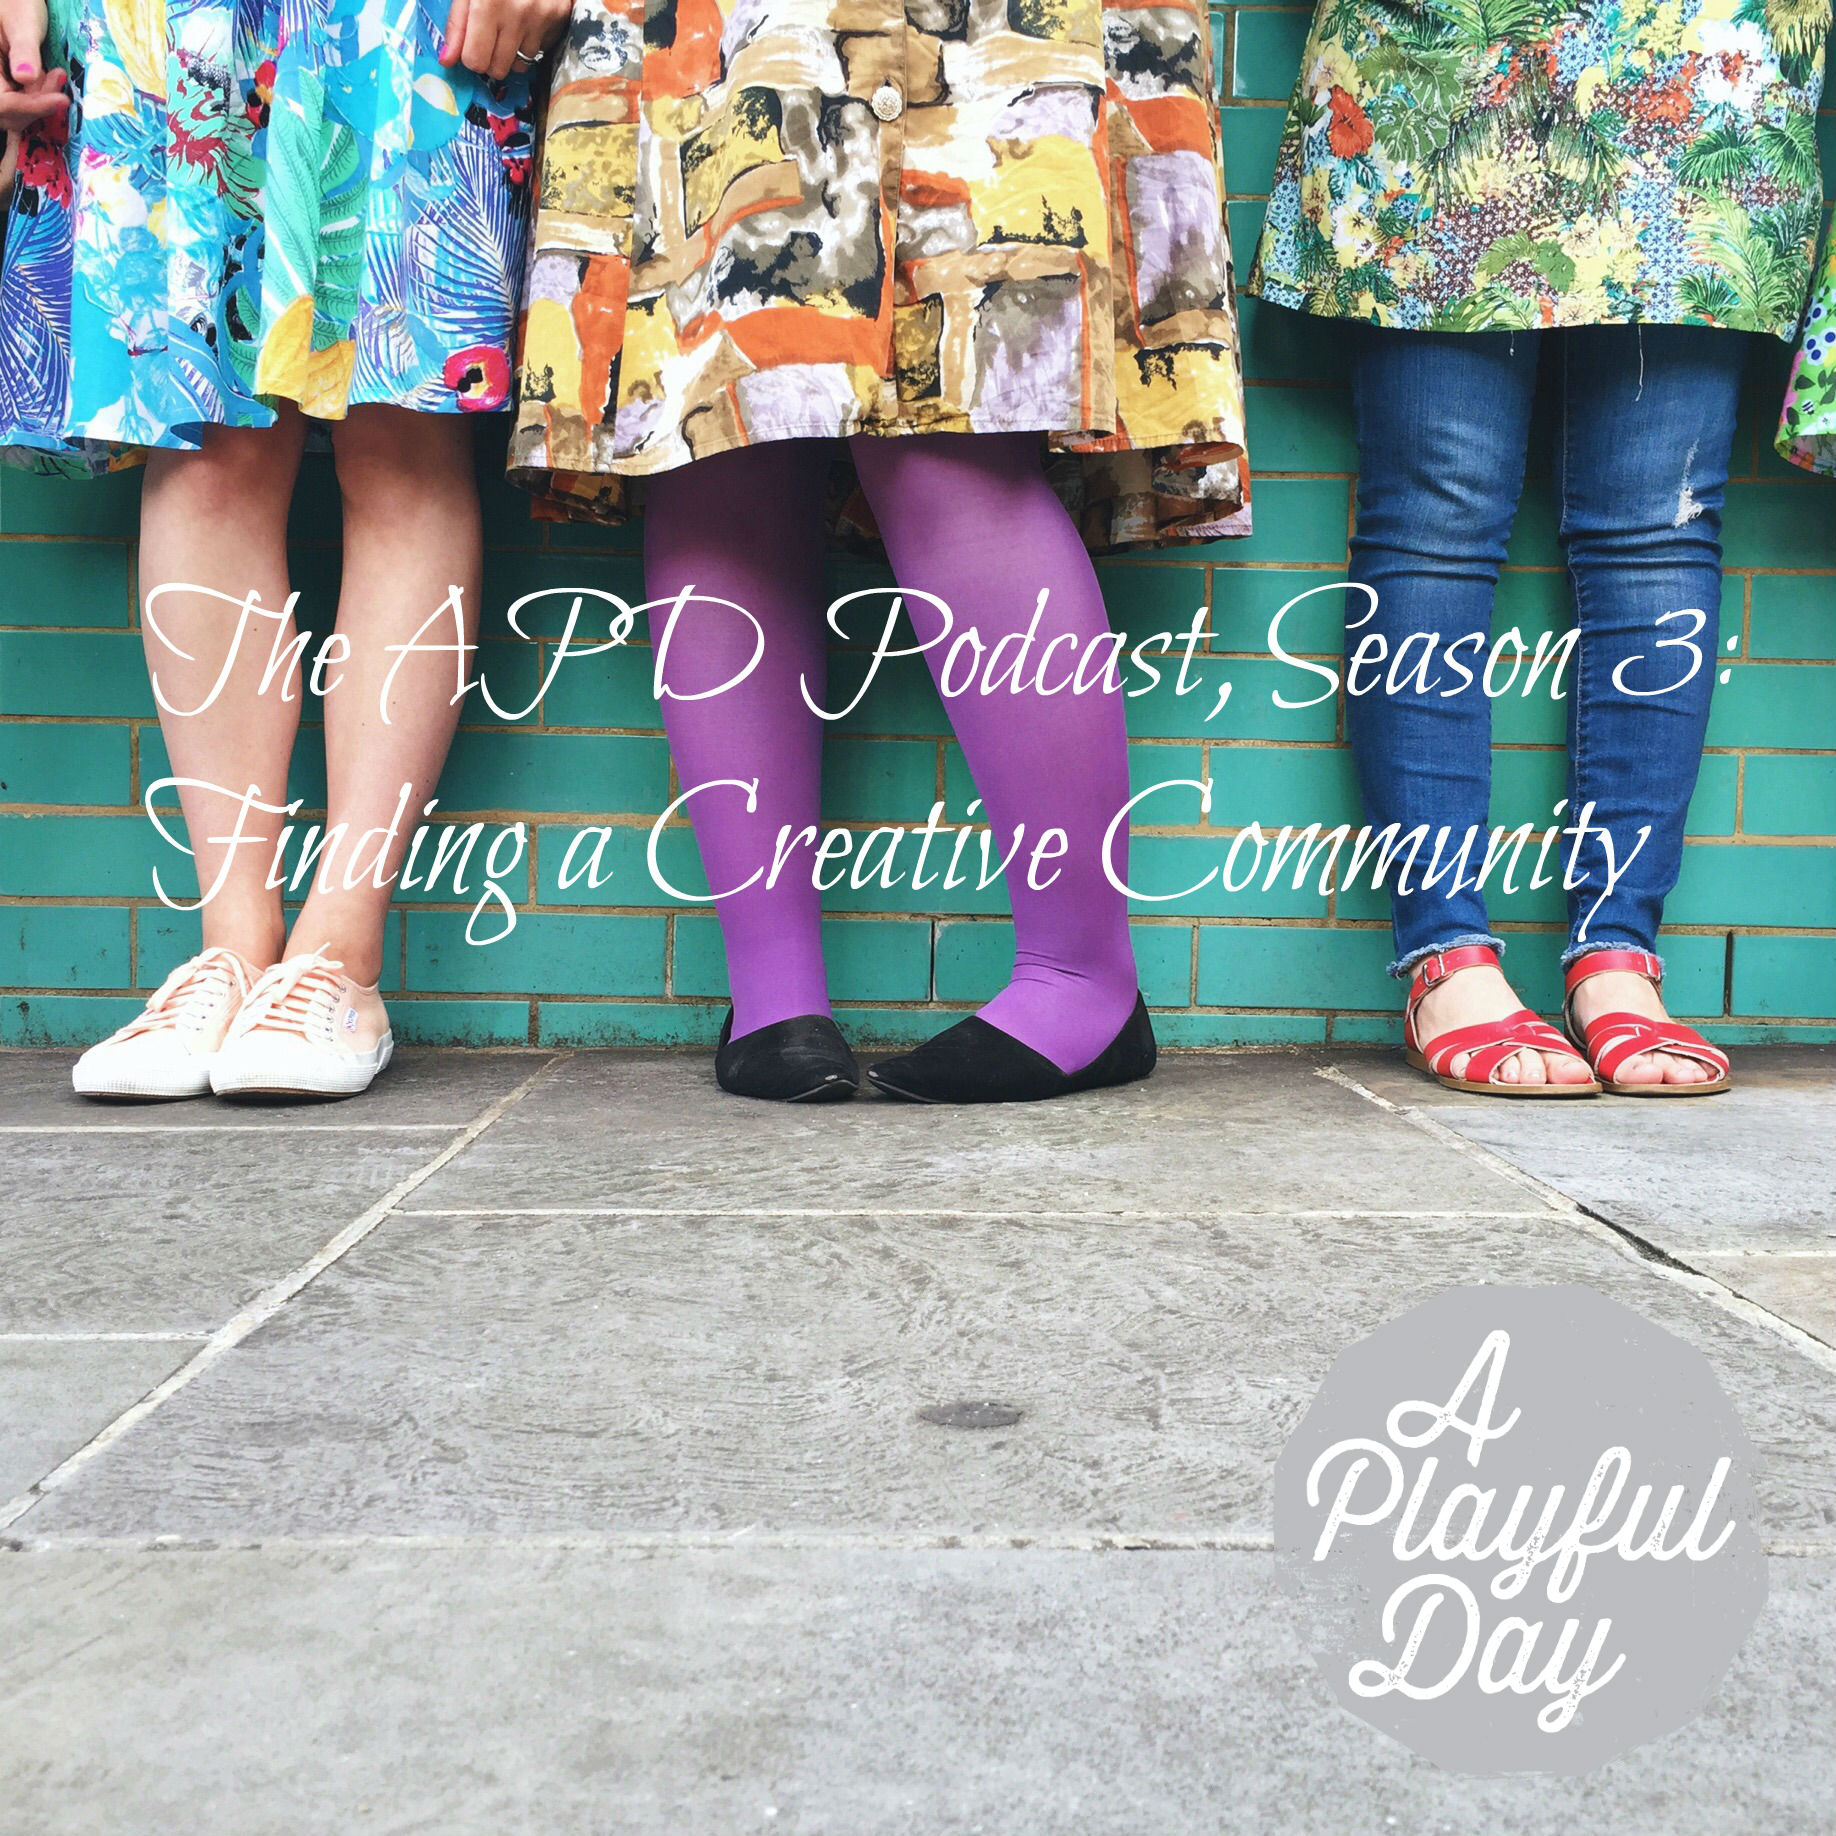 The APD Podcast, Season 3: Finding a Creative Community